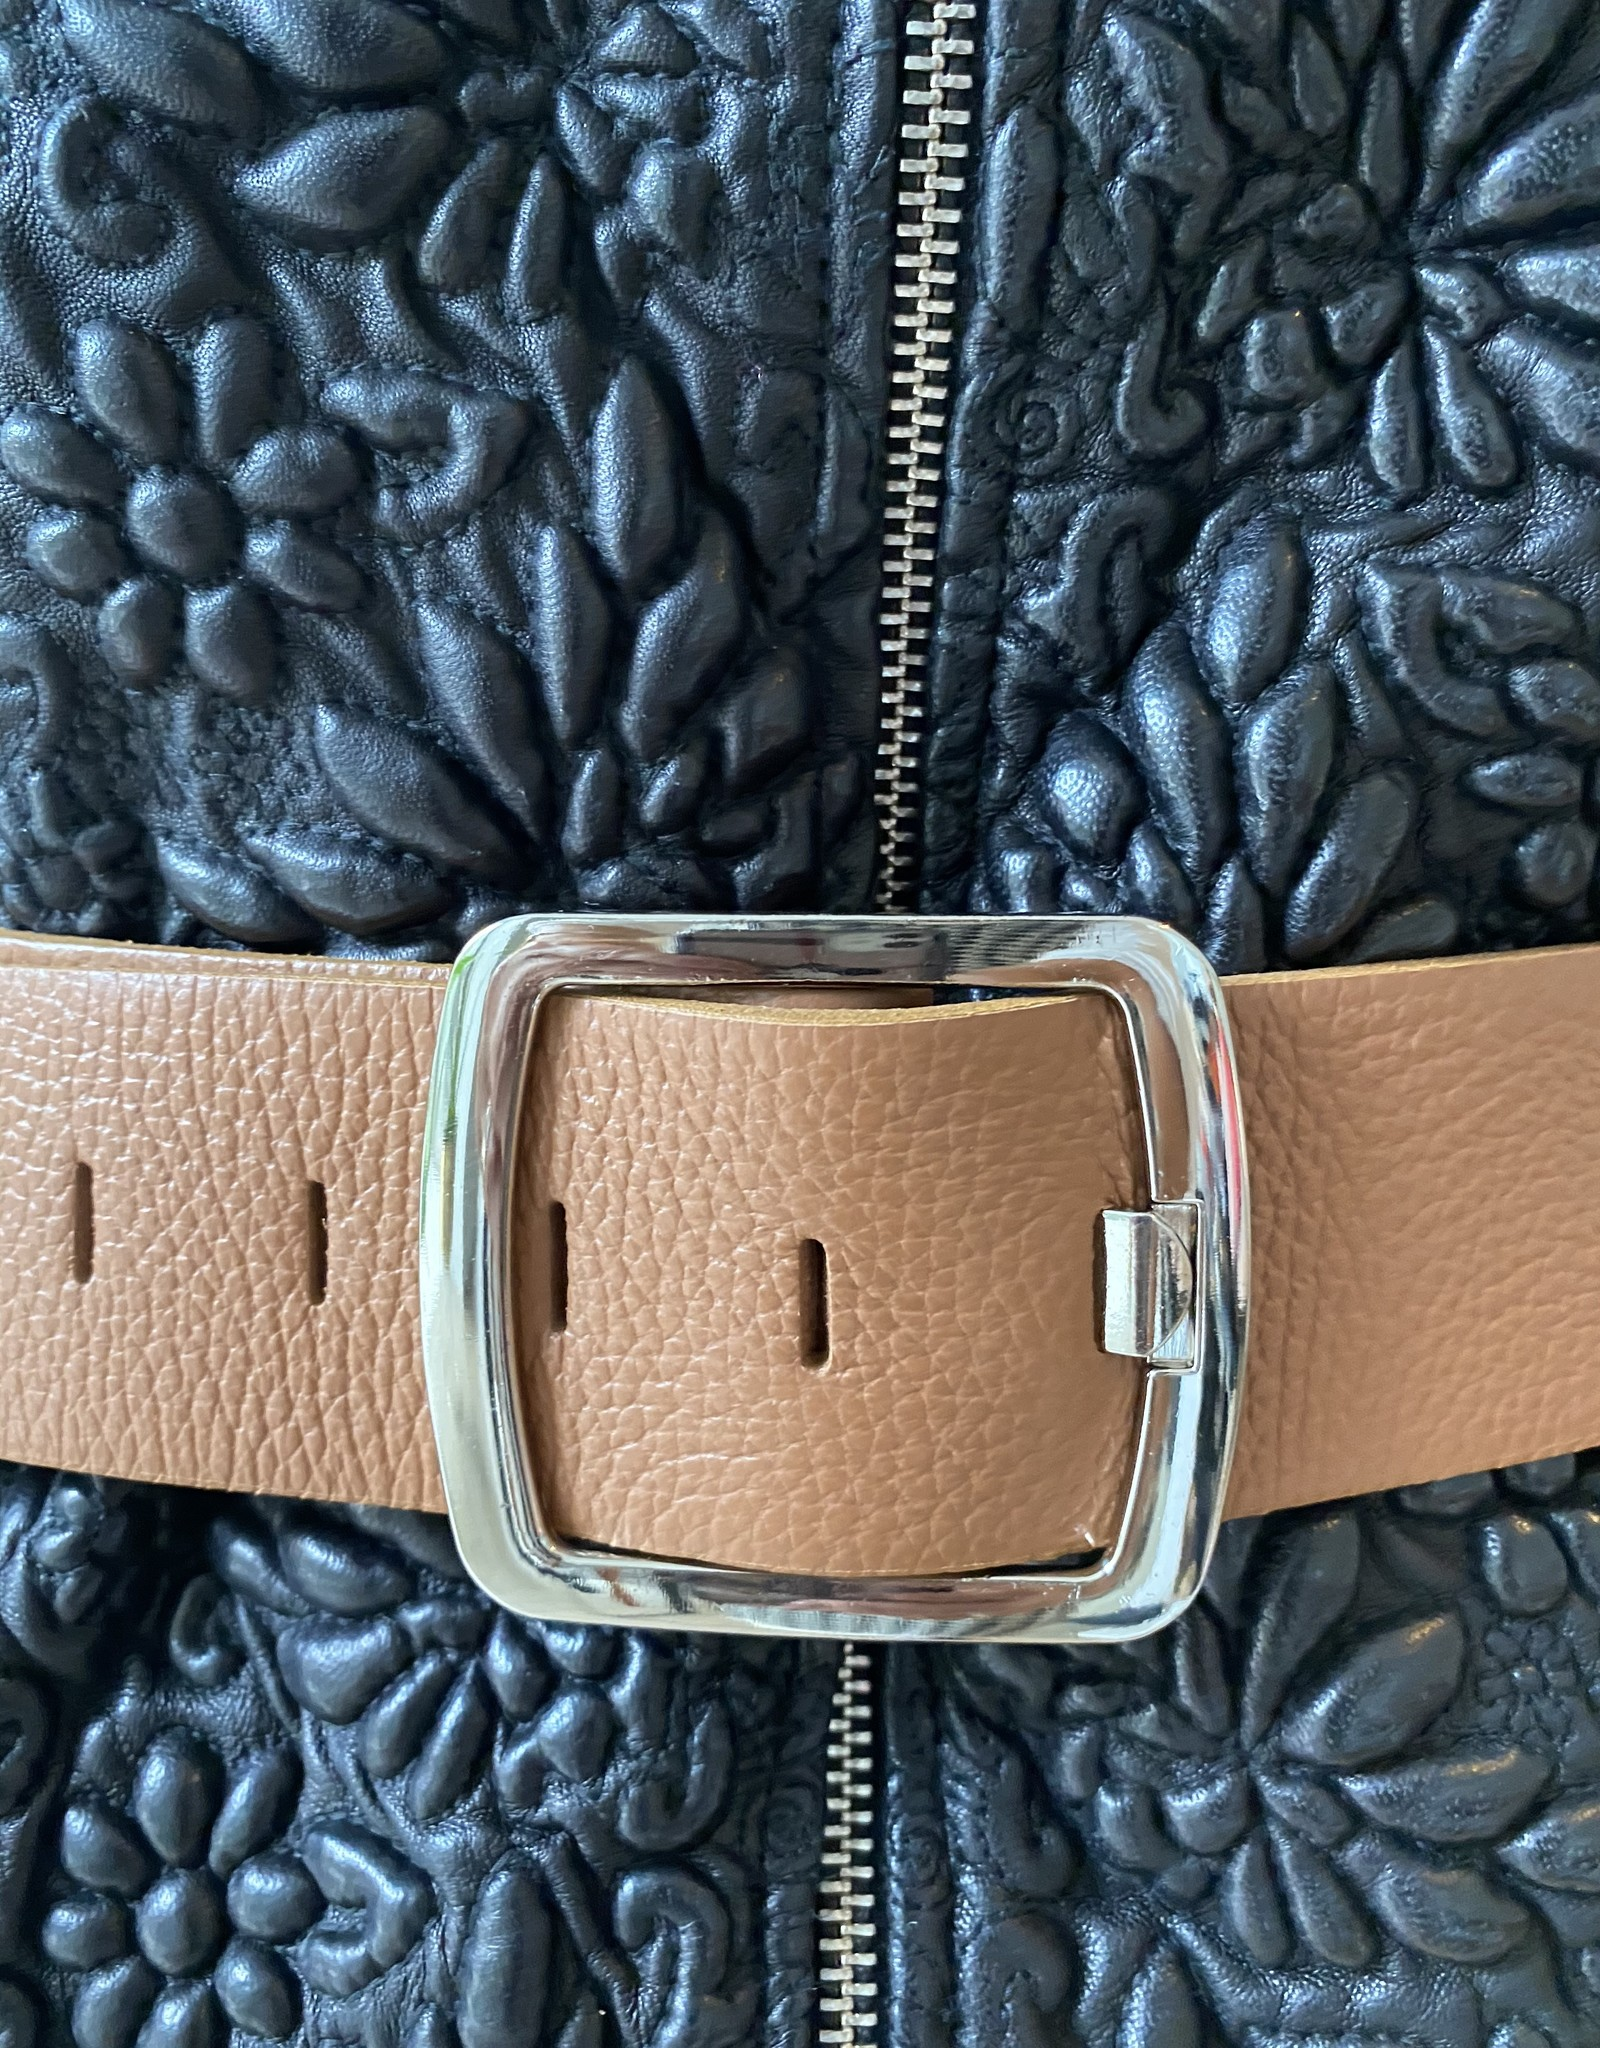 Wide leather belt with silver buckle.